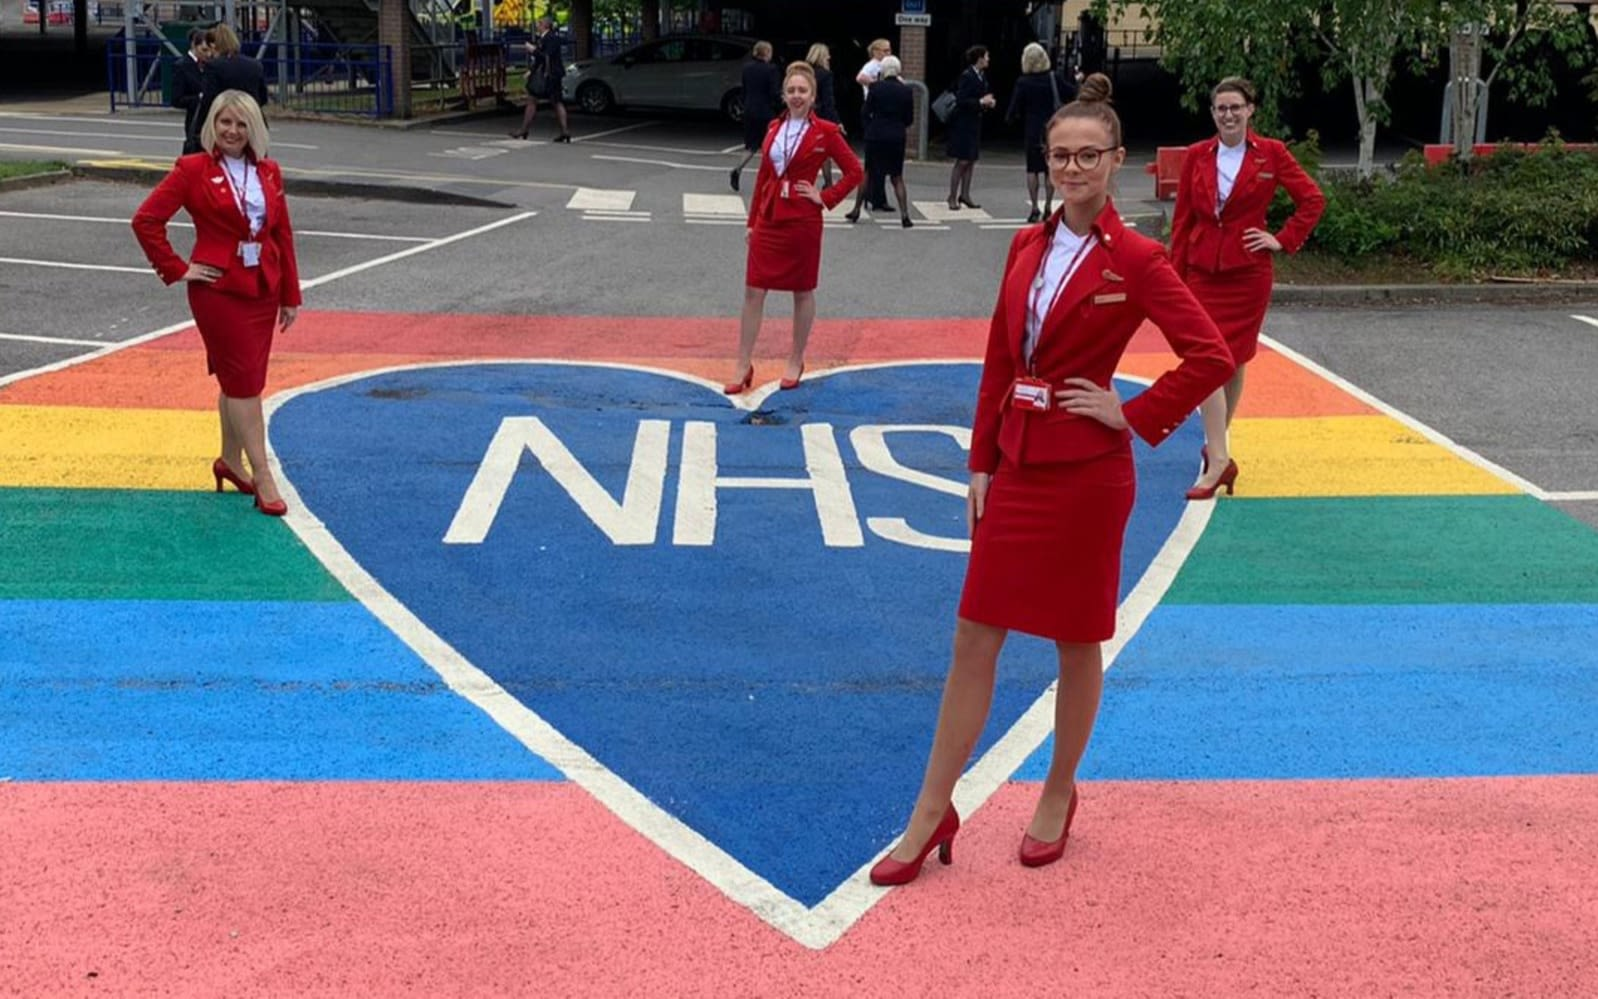 Virgin Atlantic crew pose with a large chalk rainbow heart with the NHS emblem across it.